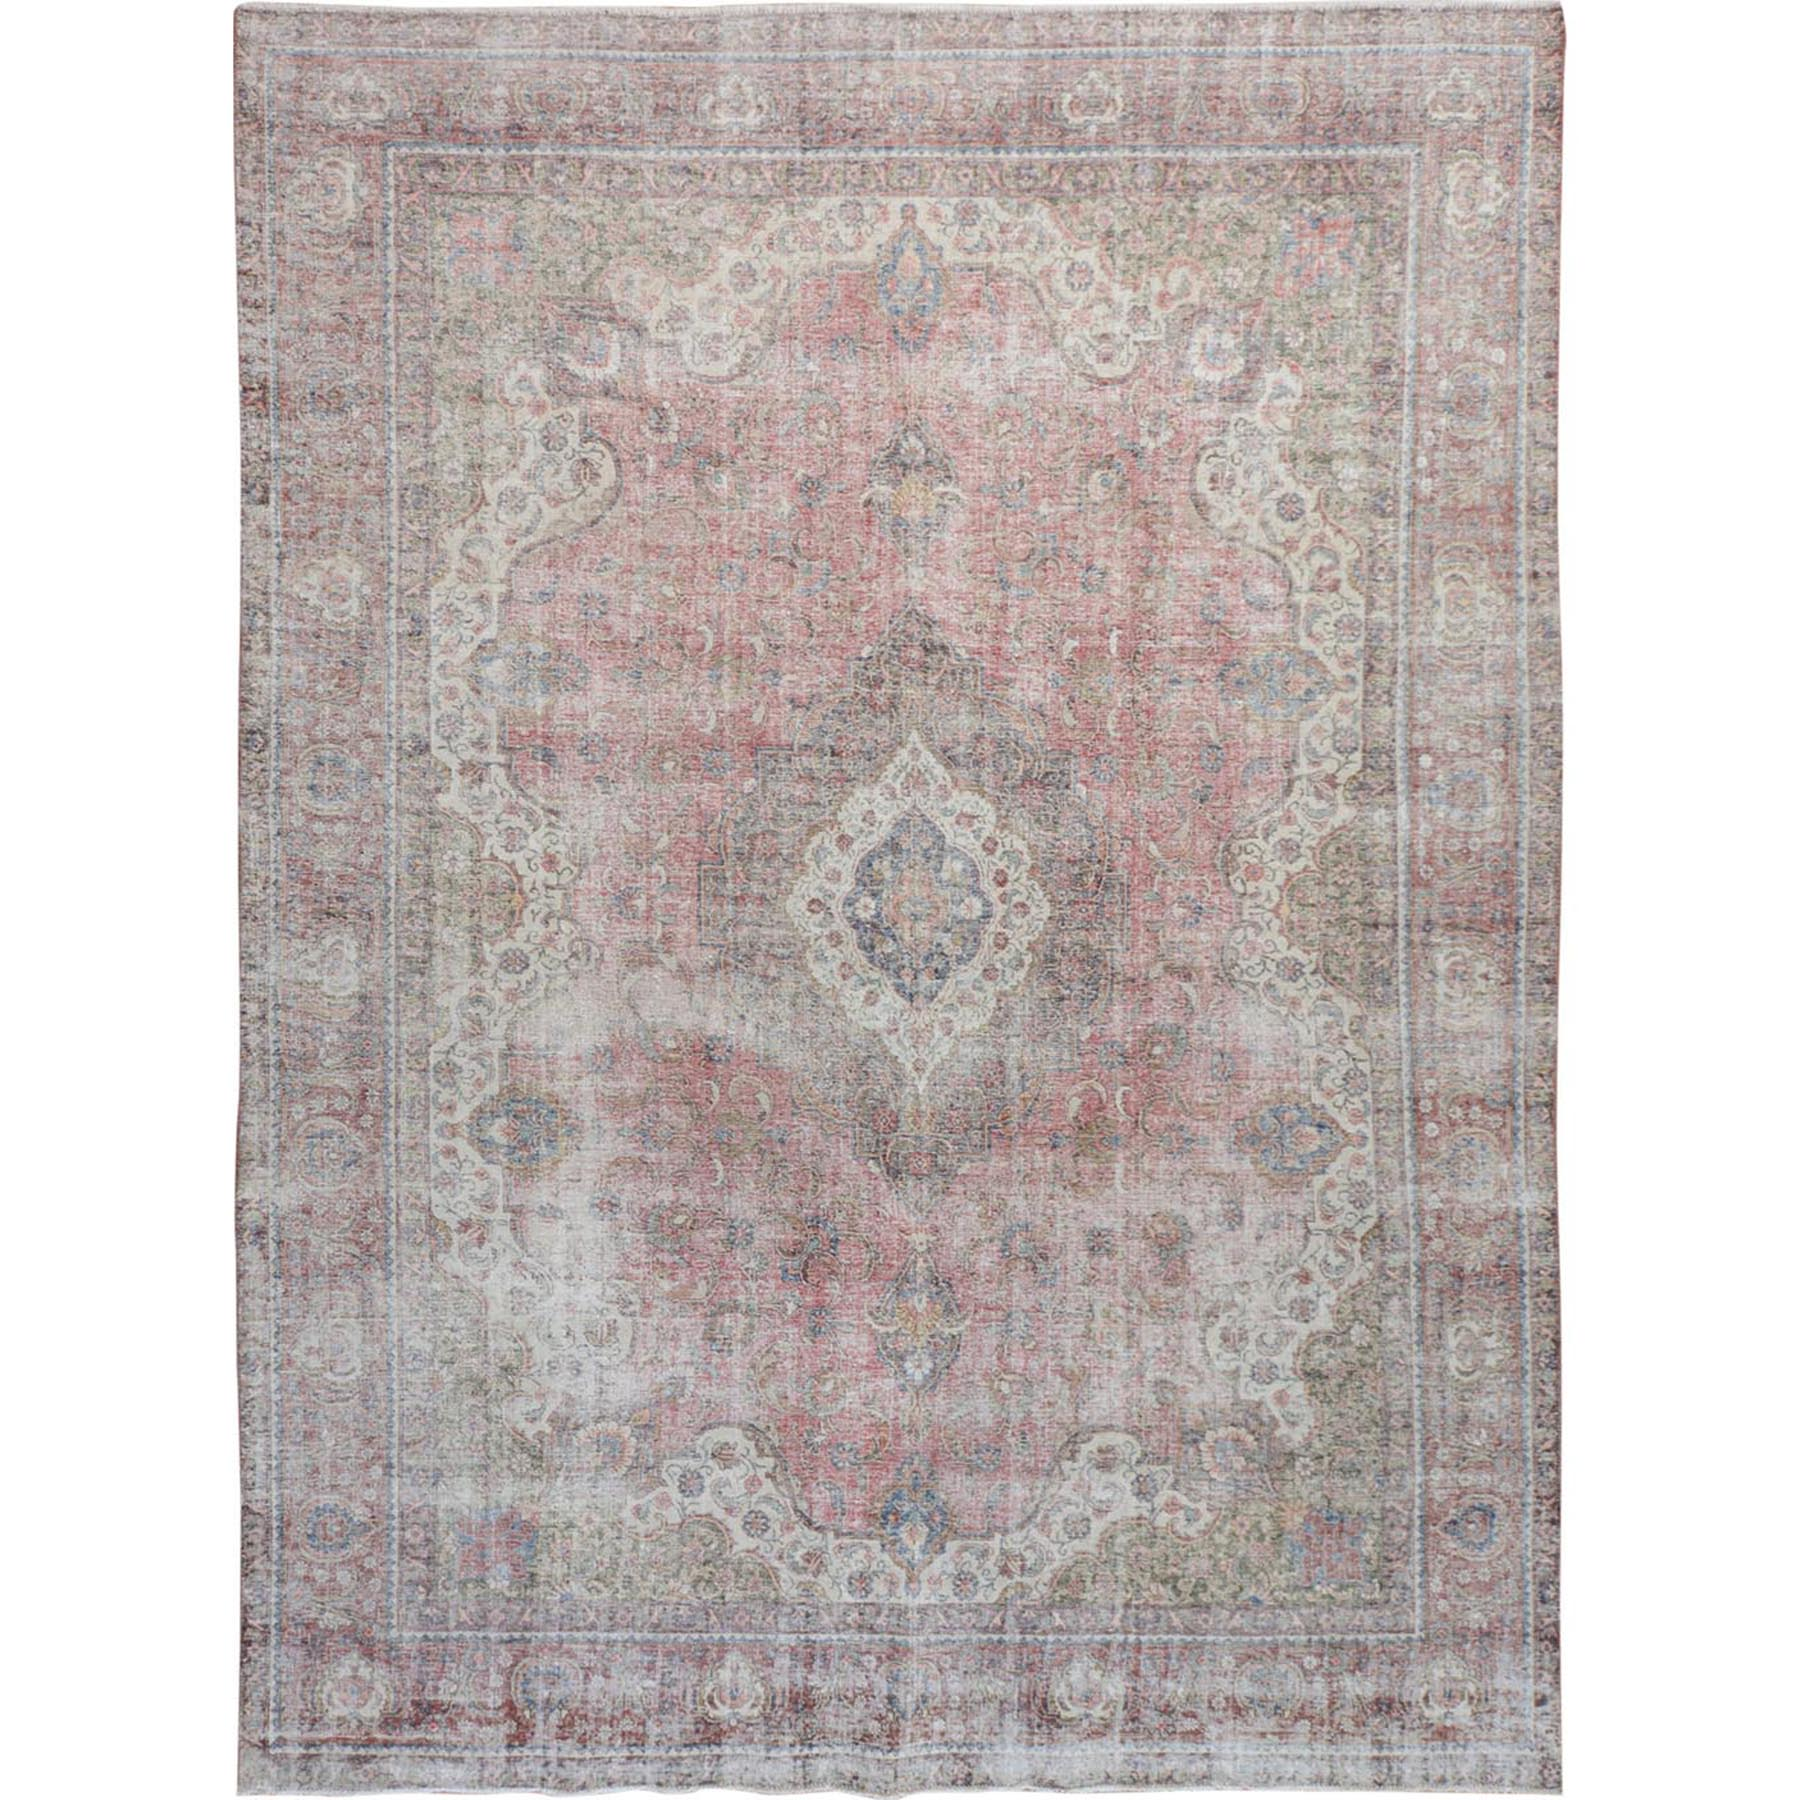 "9'4""x12'5"" Light Red Vintage Persian Tabriz Worn Down Hand Woven Pure Wool Oriental Rug"